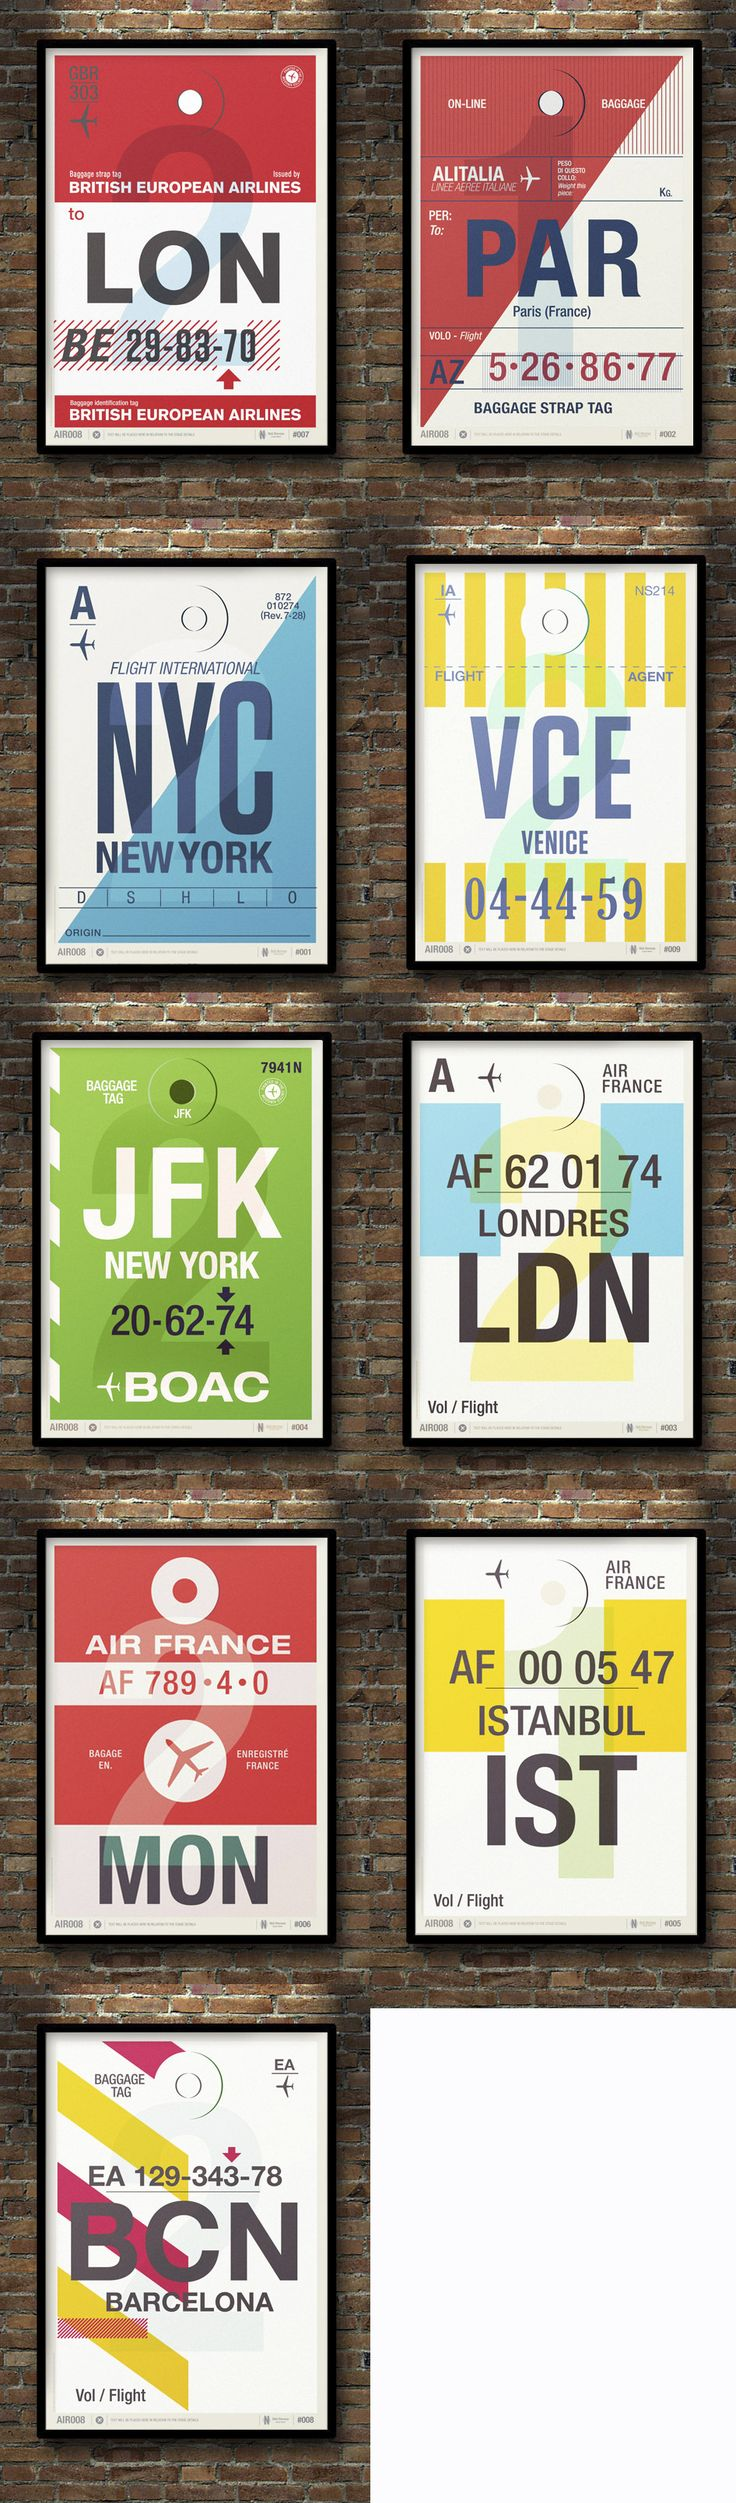 3 panel poster board designs - 3 Panel Poster Board Designs 1 About Posters Inspired By Airline Tickets 2 Hierarchy 1 Download